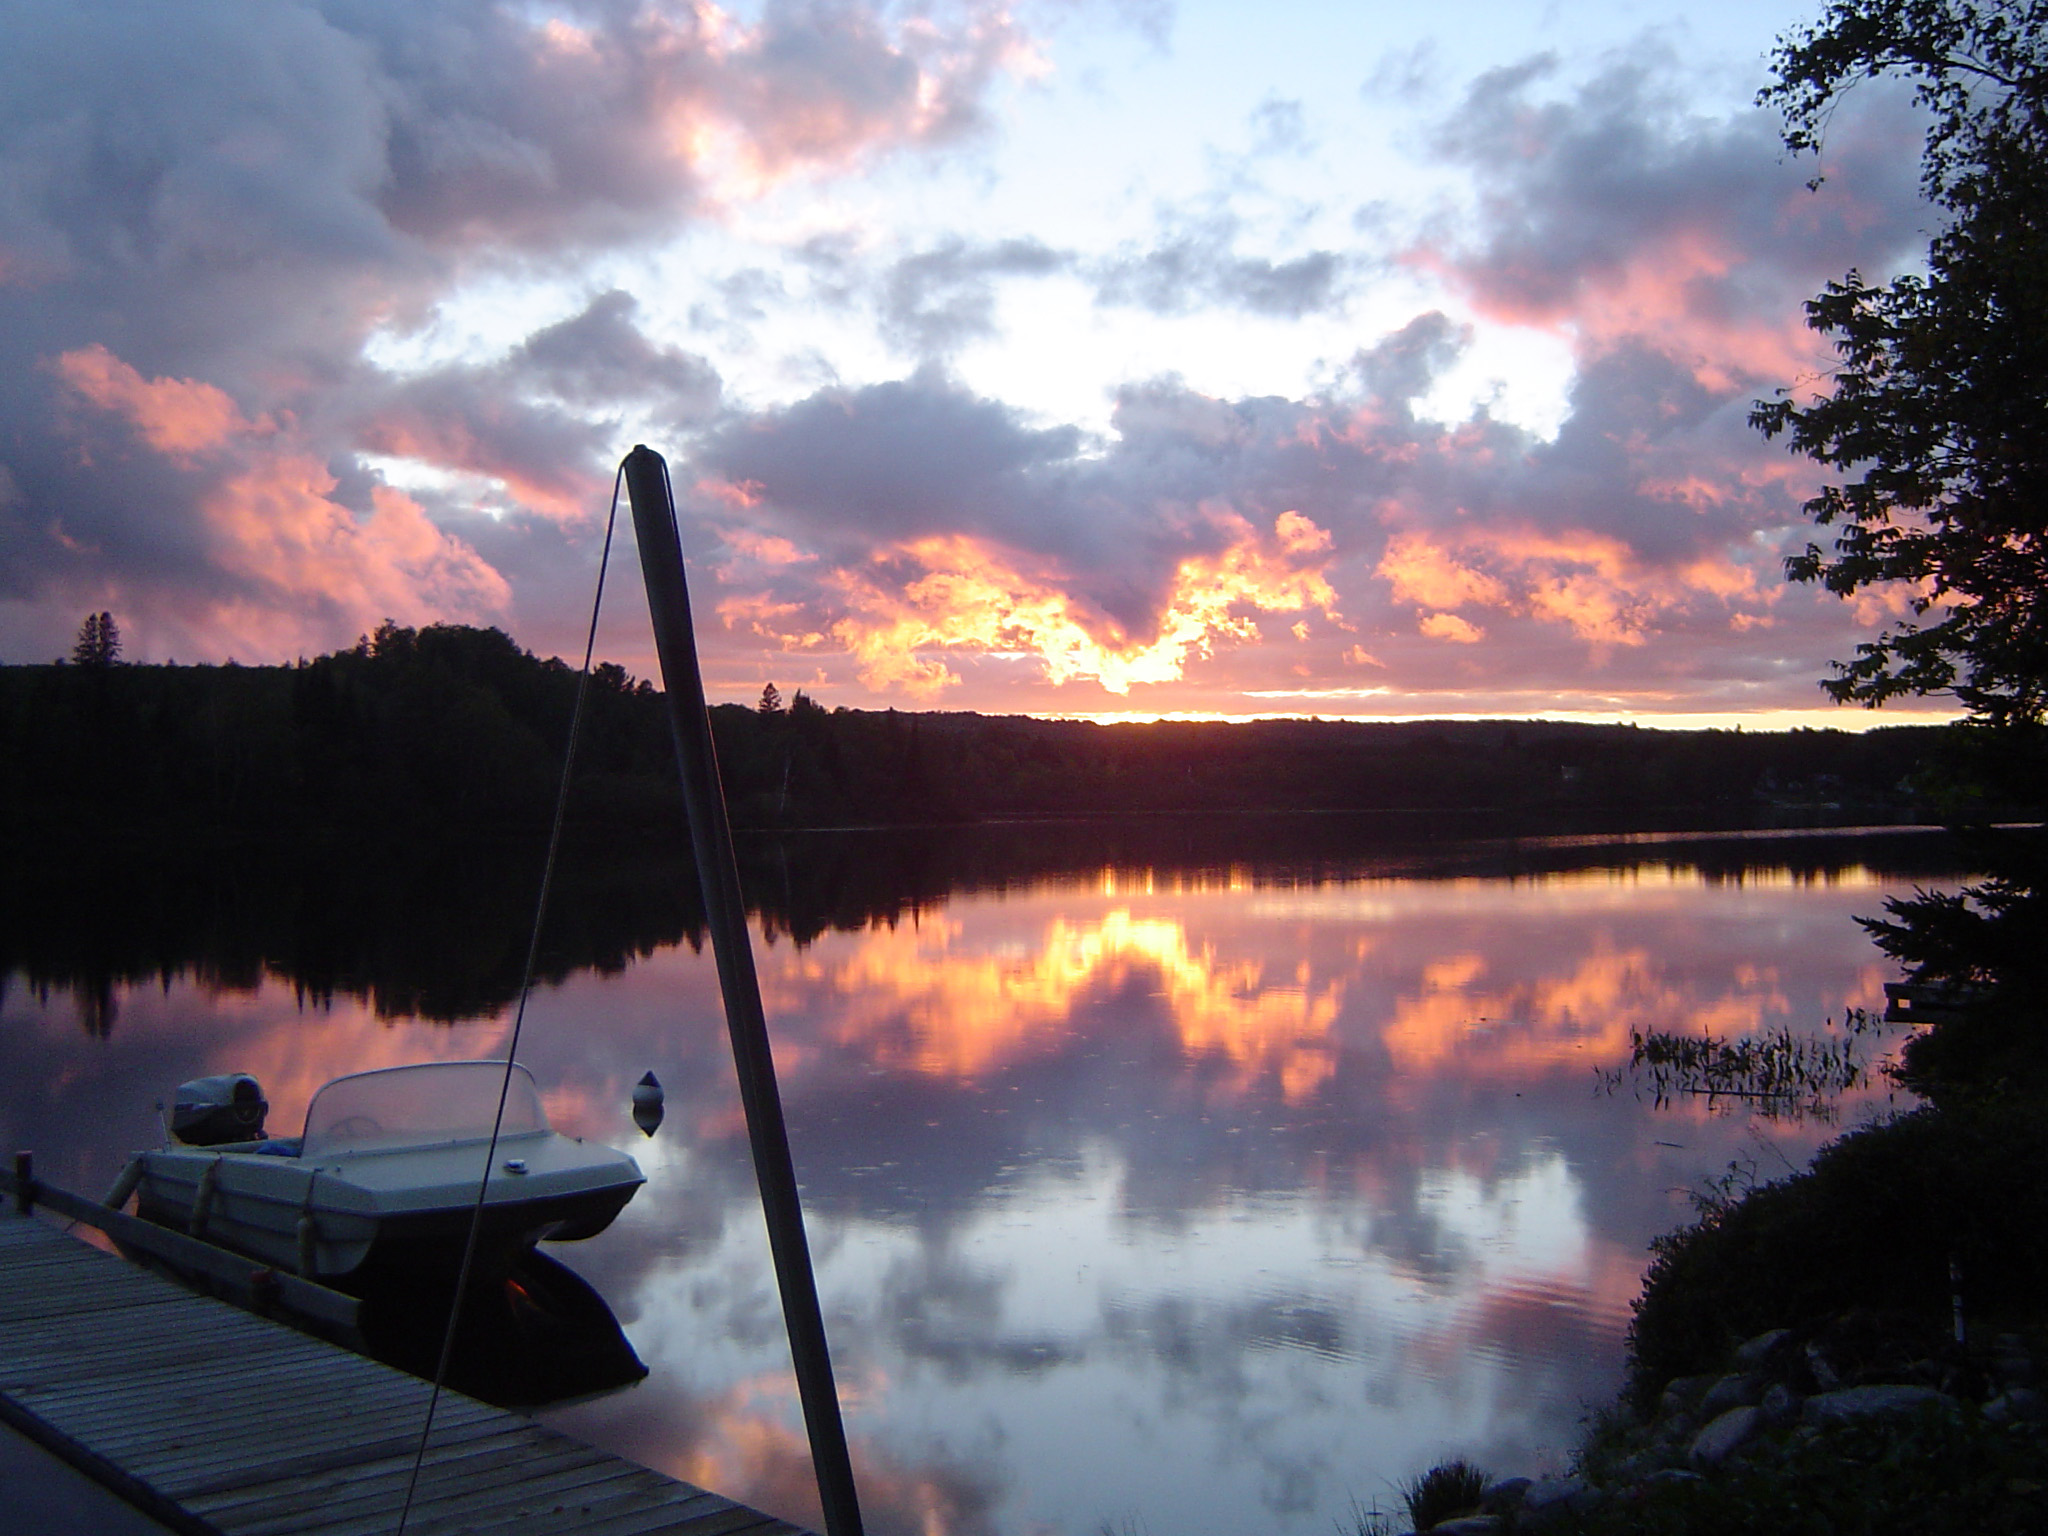 Boat at Dock on Lake at Sunset in Algonquin Park, Ontario, Canada